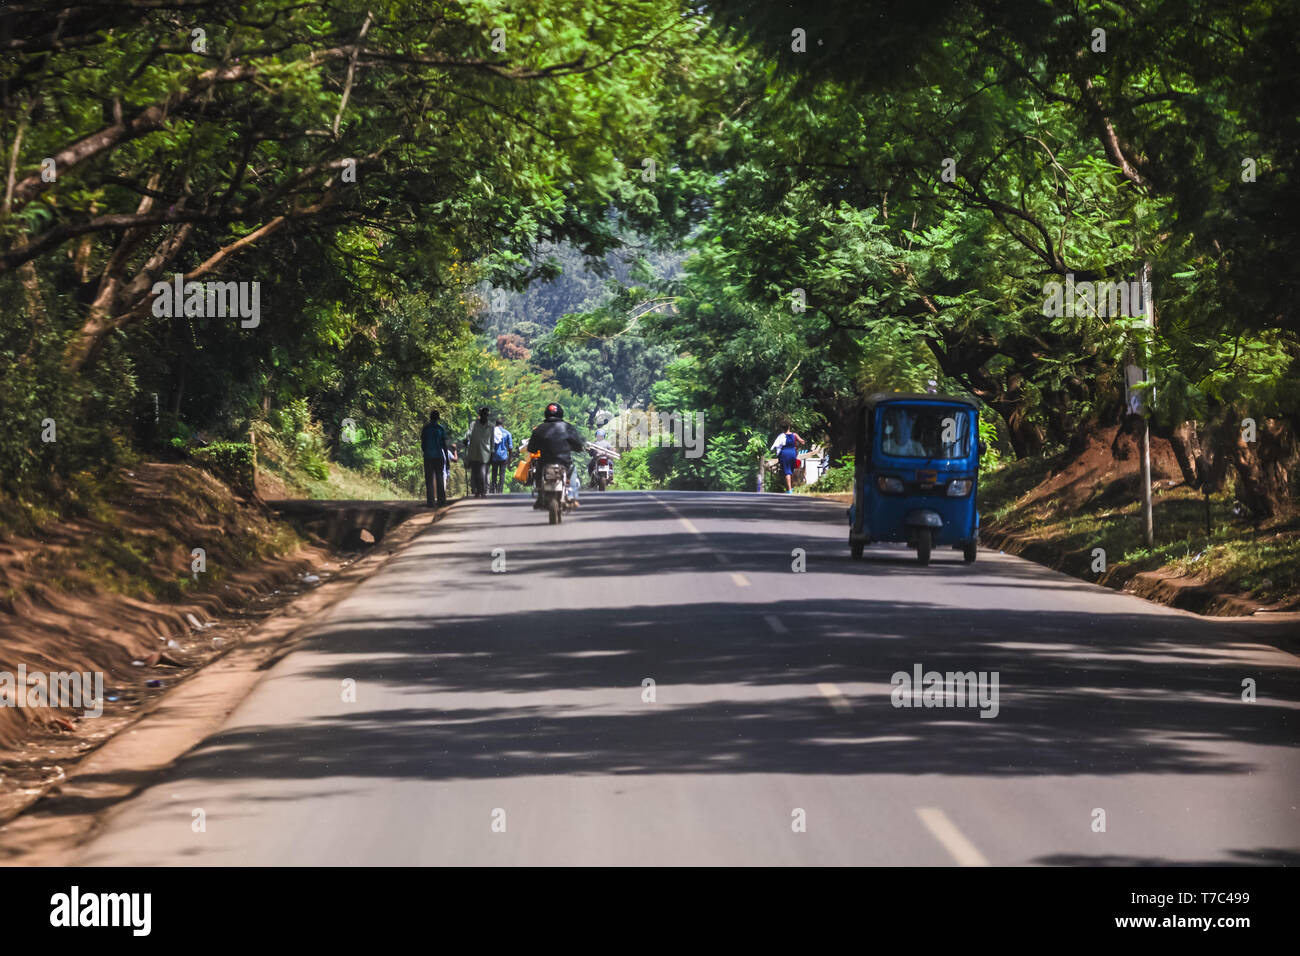 Long road through the jungle dense trees. Vehicles riding to the city and villages. People riding on bicycles and walking.Summer sunny day, travelling Stock Photo